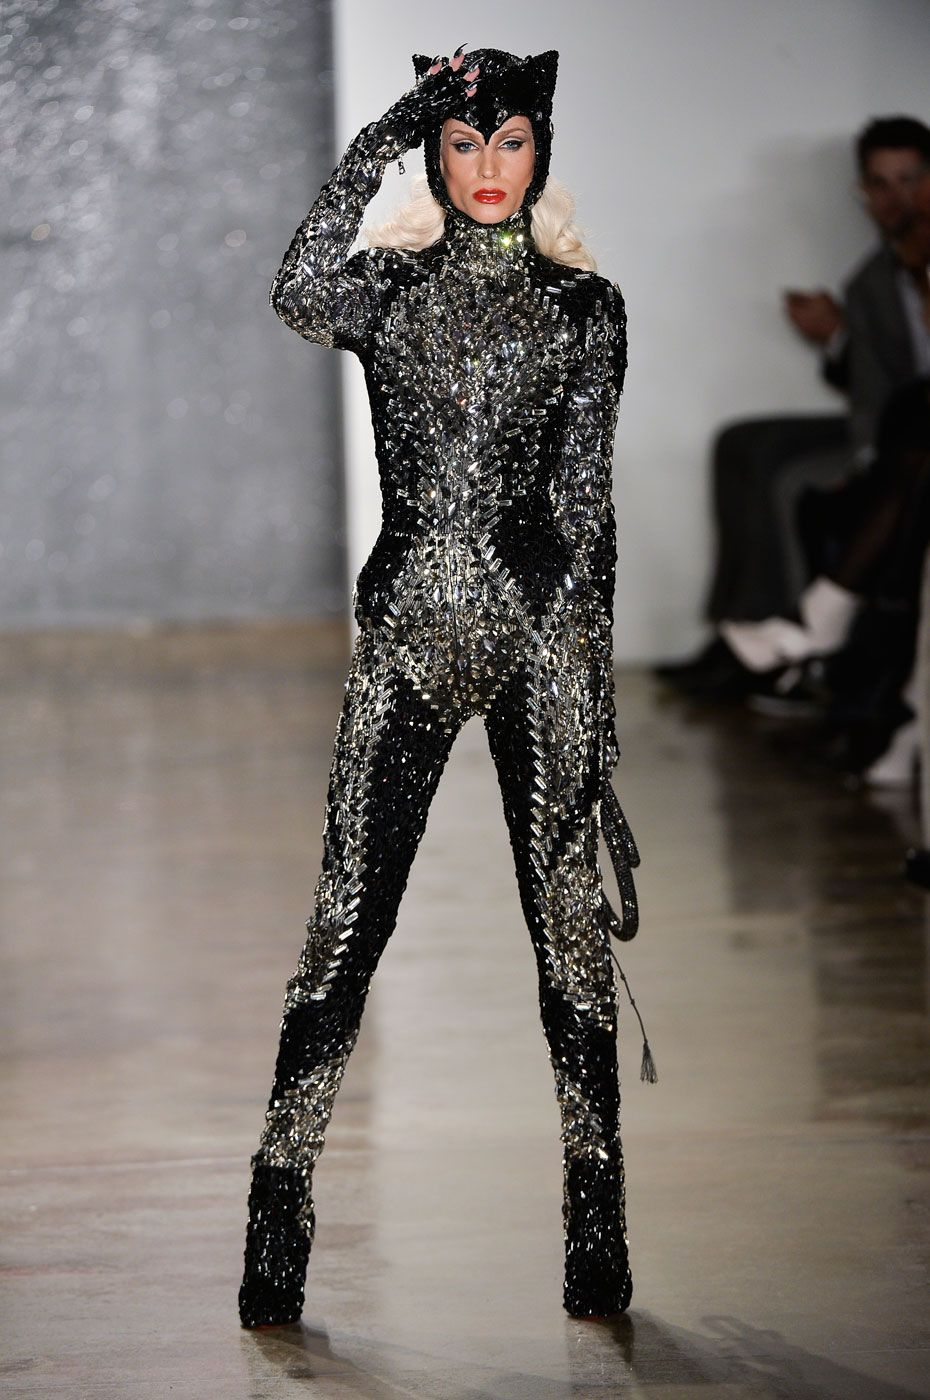 Forum on this topic: The Blonds Runway Show Was Inspired by , the-blonds-runway-show-was-inspired-by/